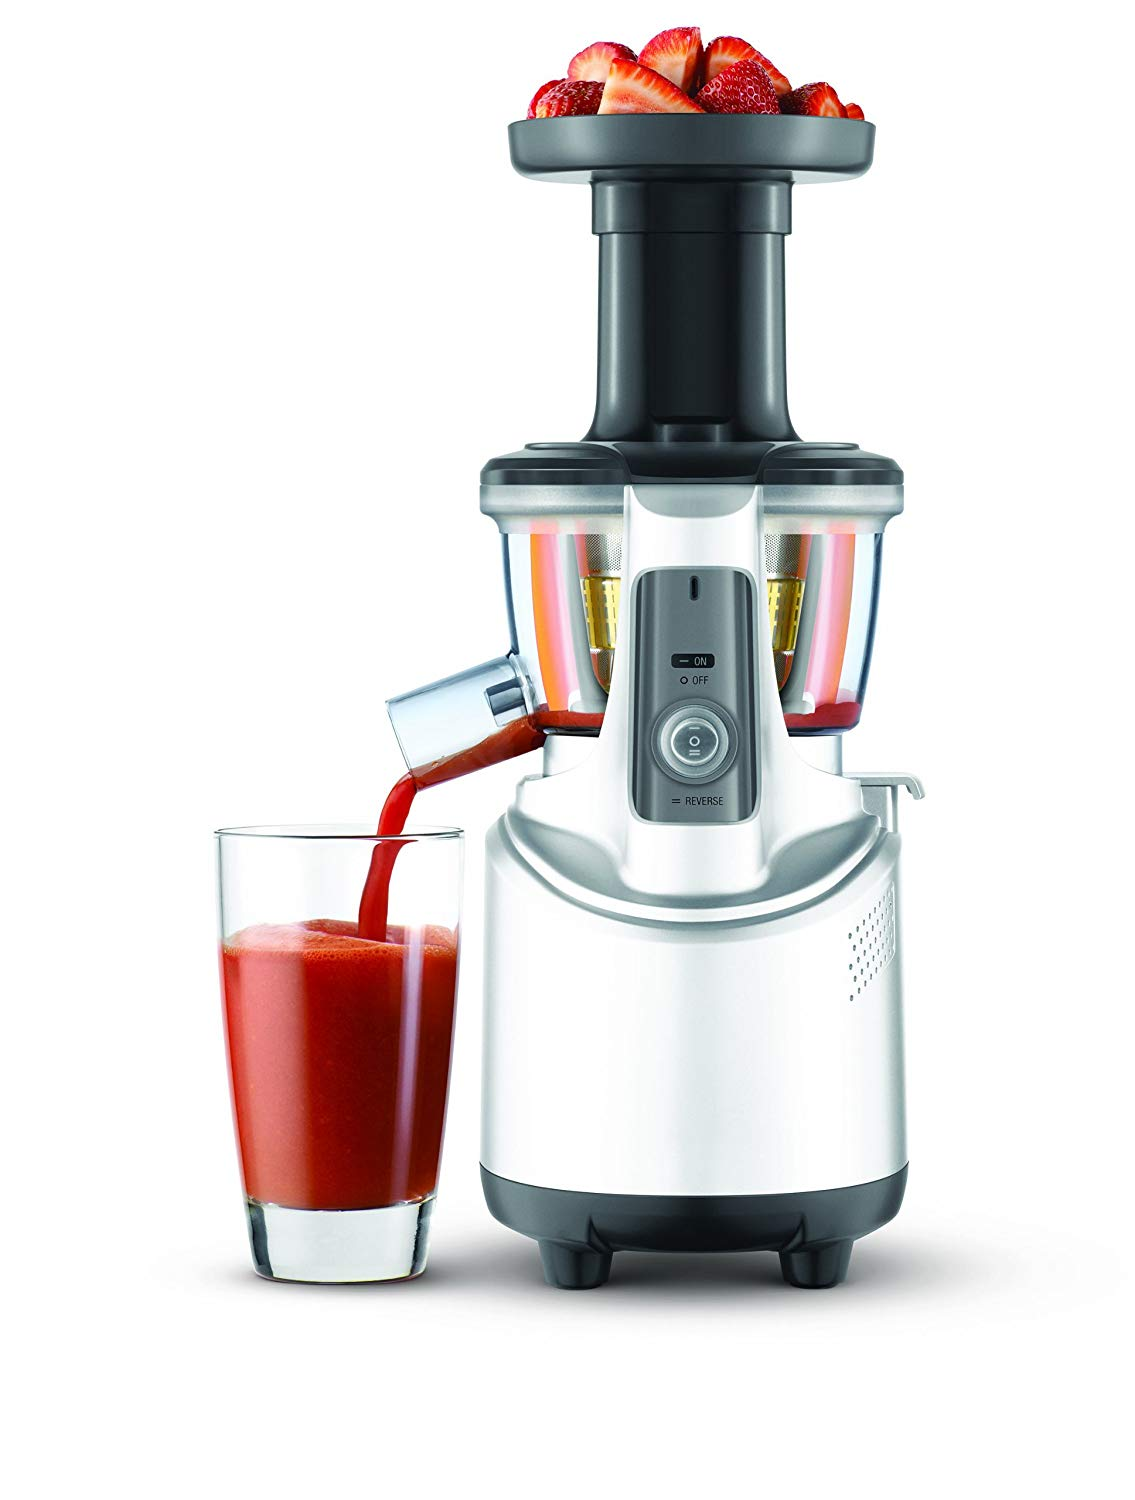 Breville BJS600XL Masticating Juicer